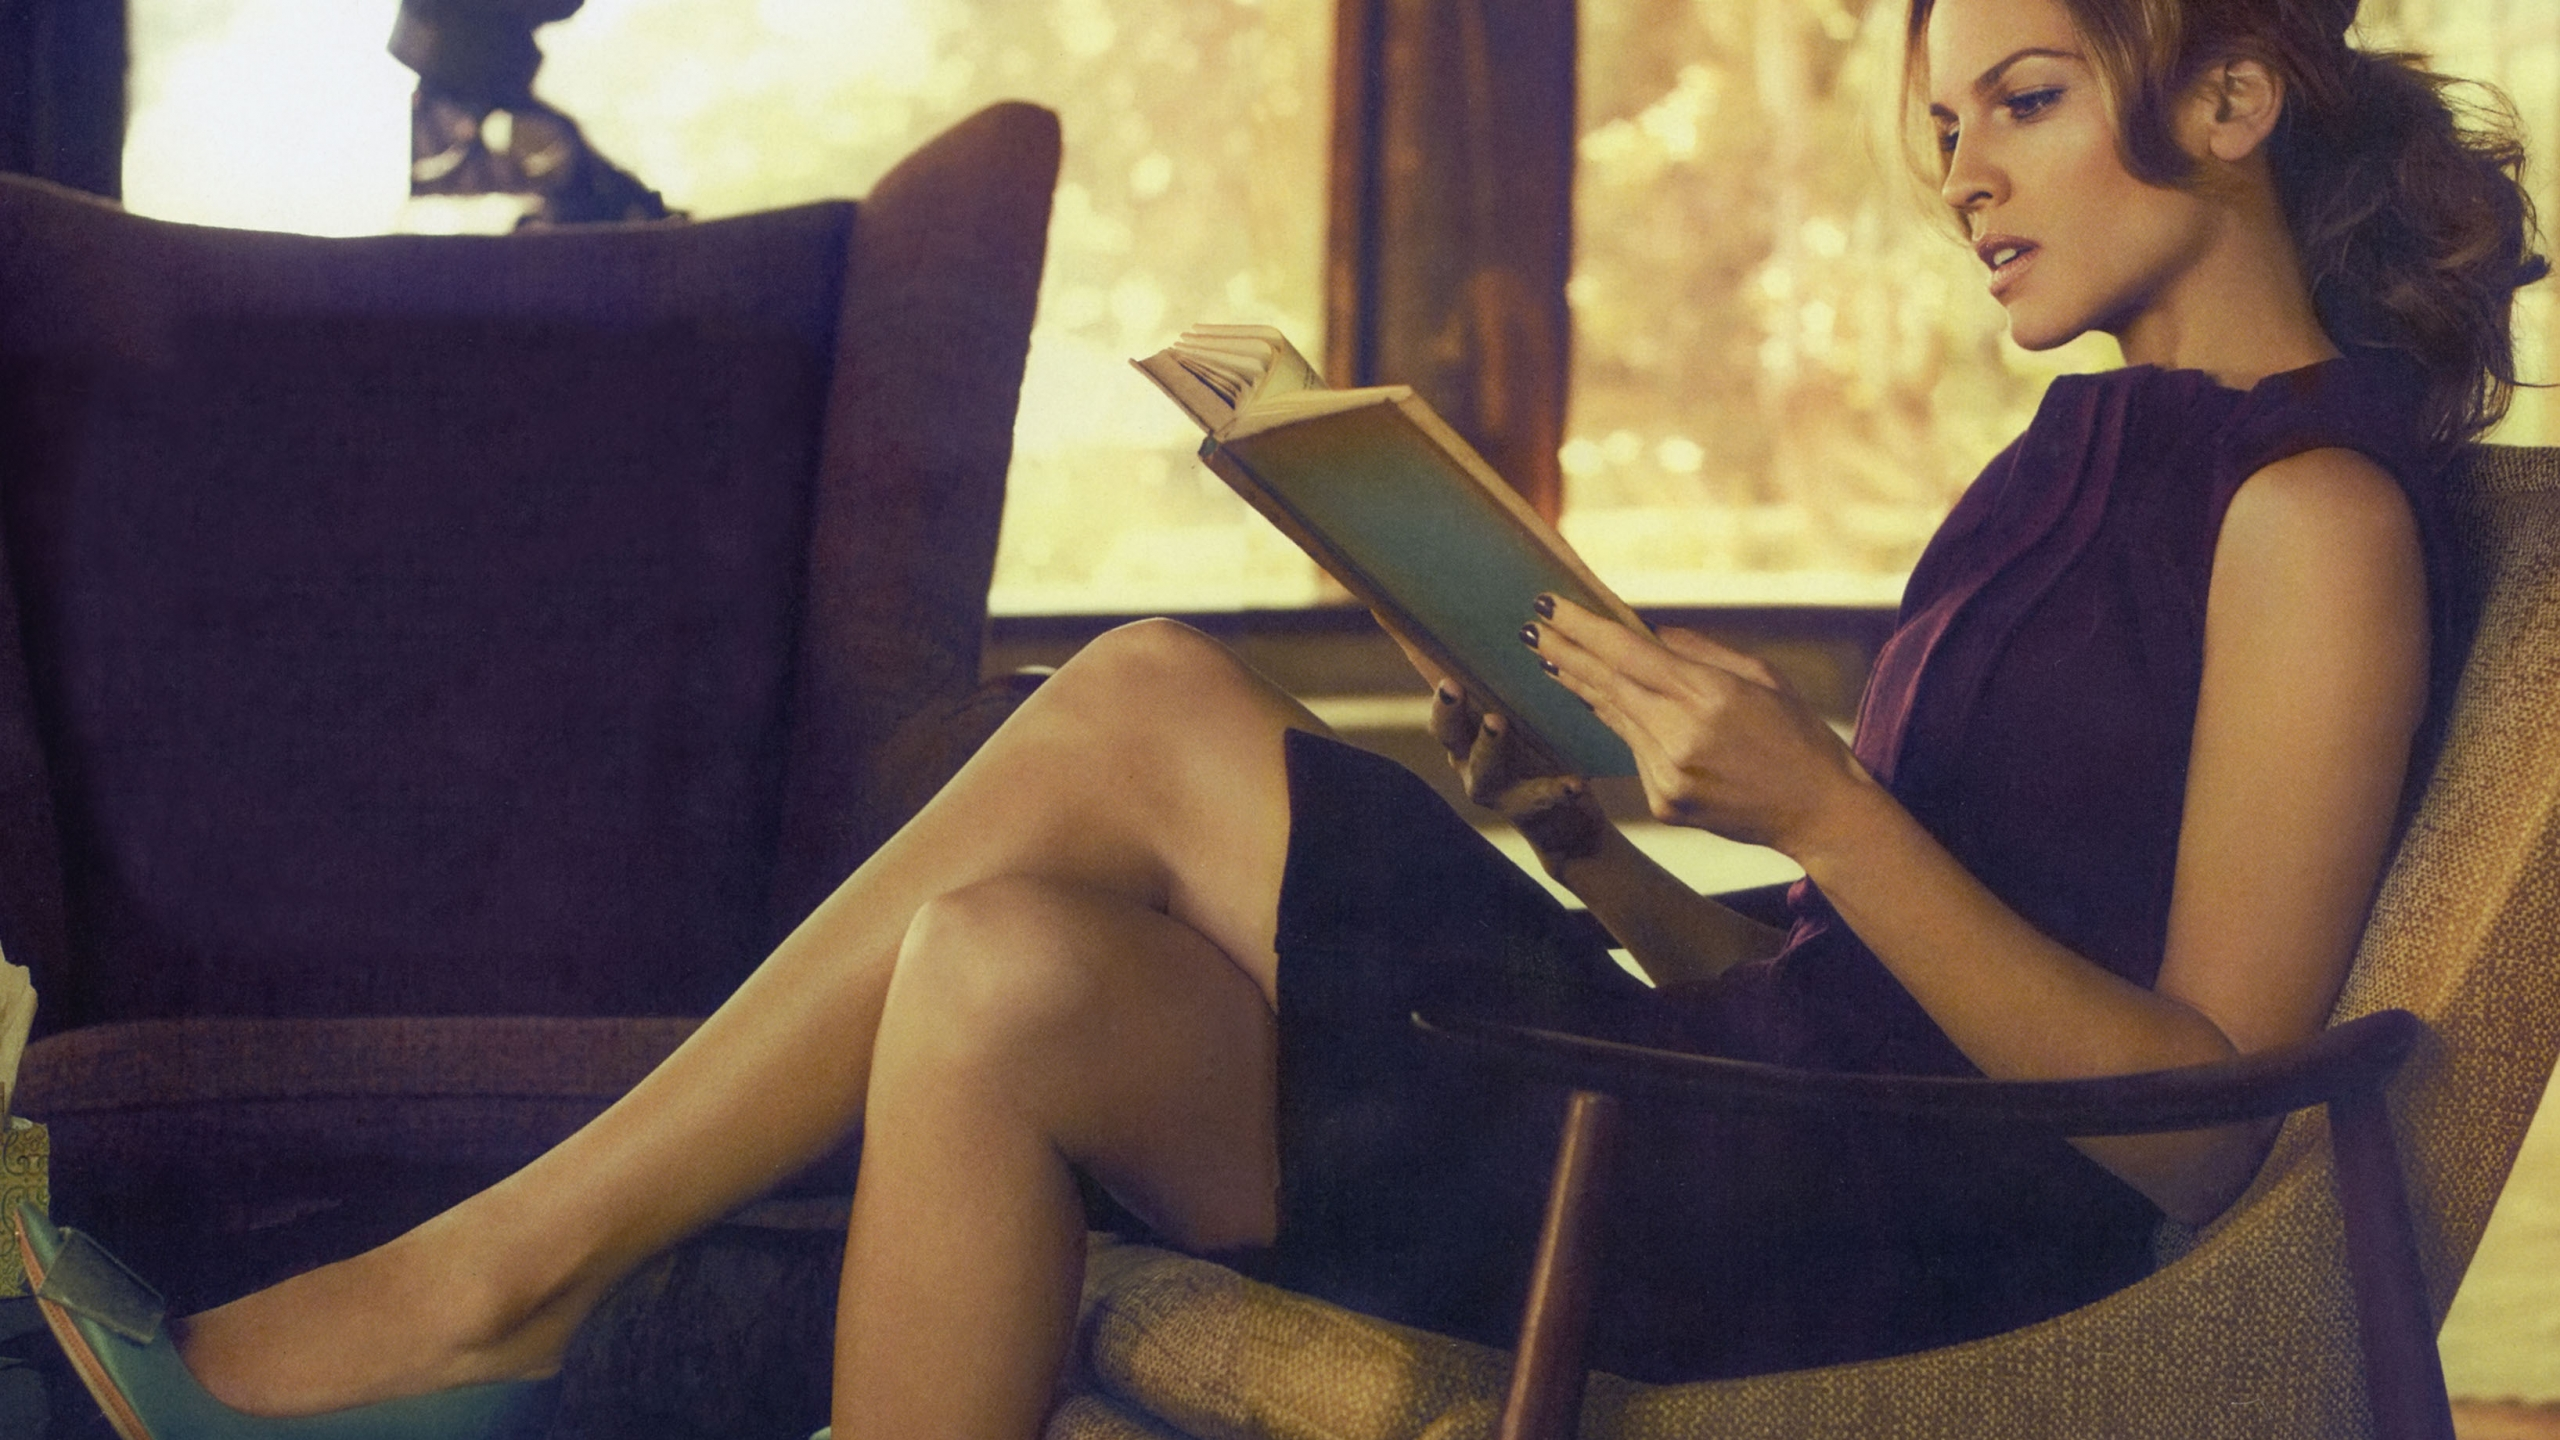 beautifull-actress-hilary-swank-reading-a-book-in-chair-hd-mobile-2080169